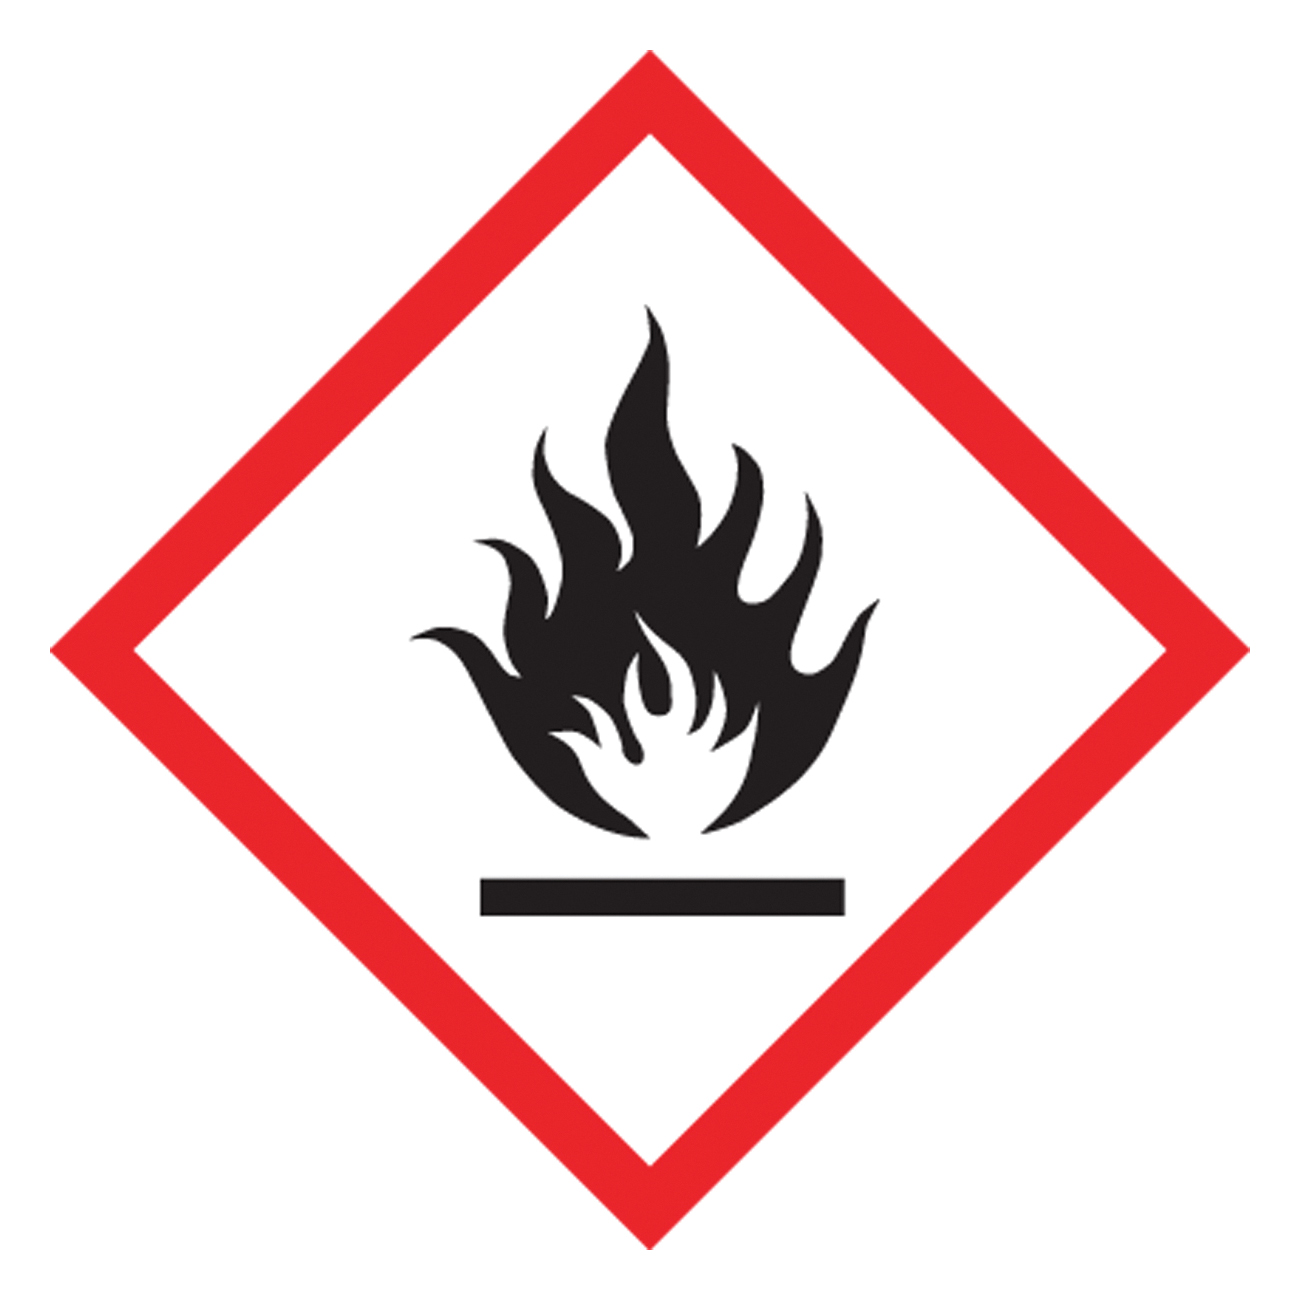 Accuform® LZH601EV5 Diamond Self-Adhesive GHS Pictogram Label, 1 in L x 1 in W, (Flame) Legend, Black/Red/White, Adhesive Polyester, 500 per Roll Labels